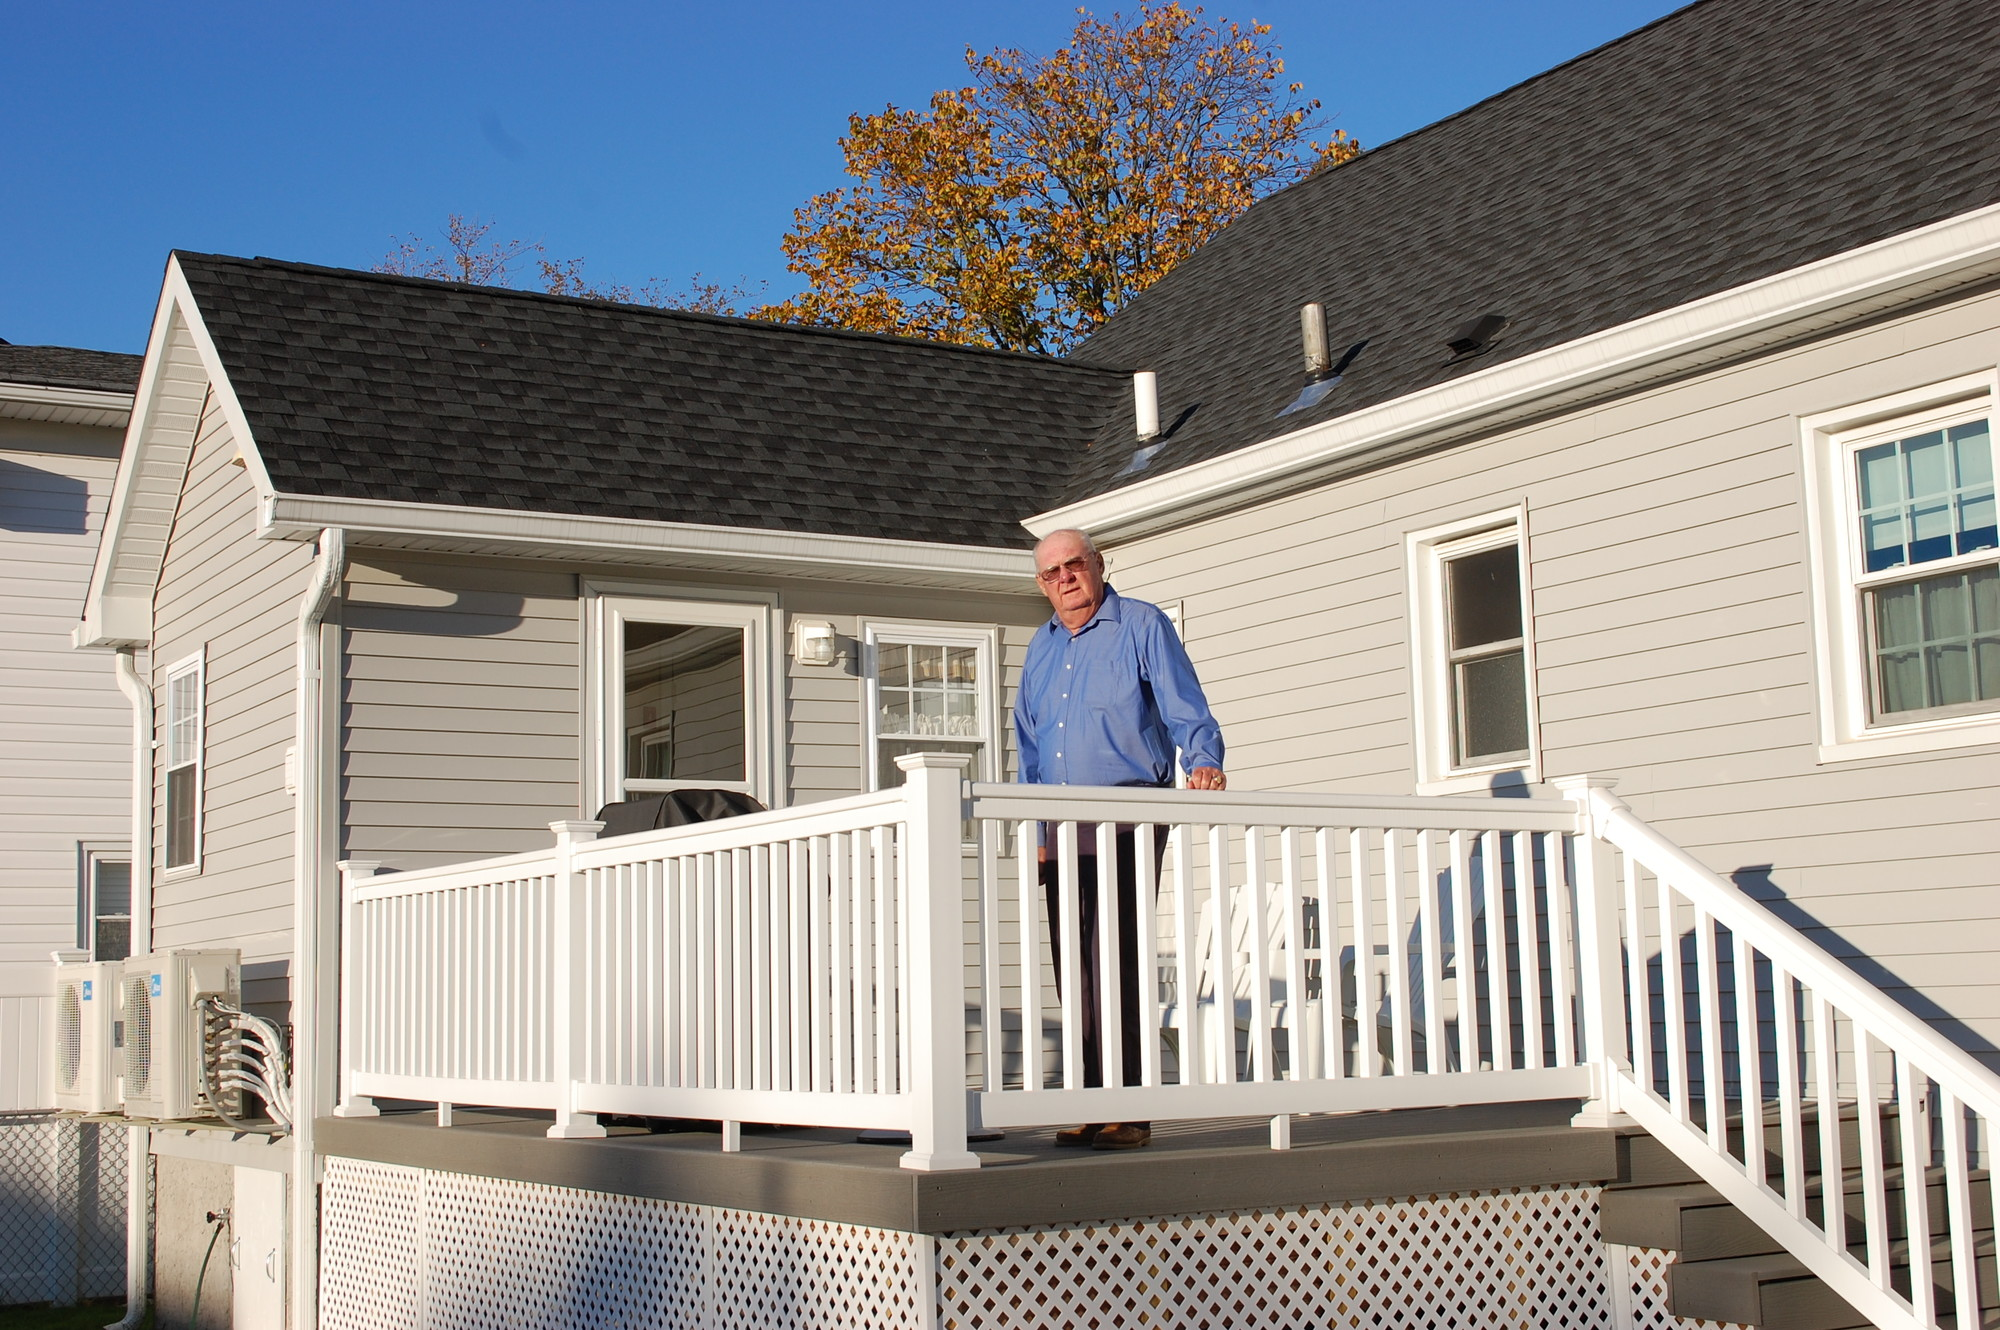 Charles Wroblewski had an extension built onto his Riverside Drive home in Seaford to replace the space lost when he filled in his basement, which flooded during Hurricane Sandy on Oct. 29, 2012.